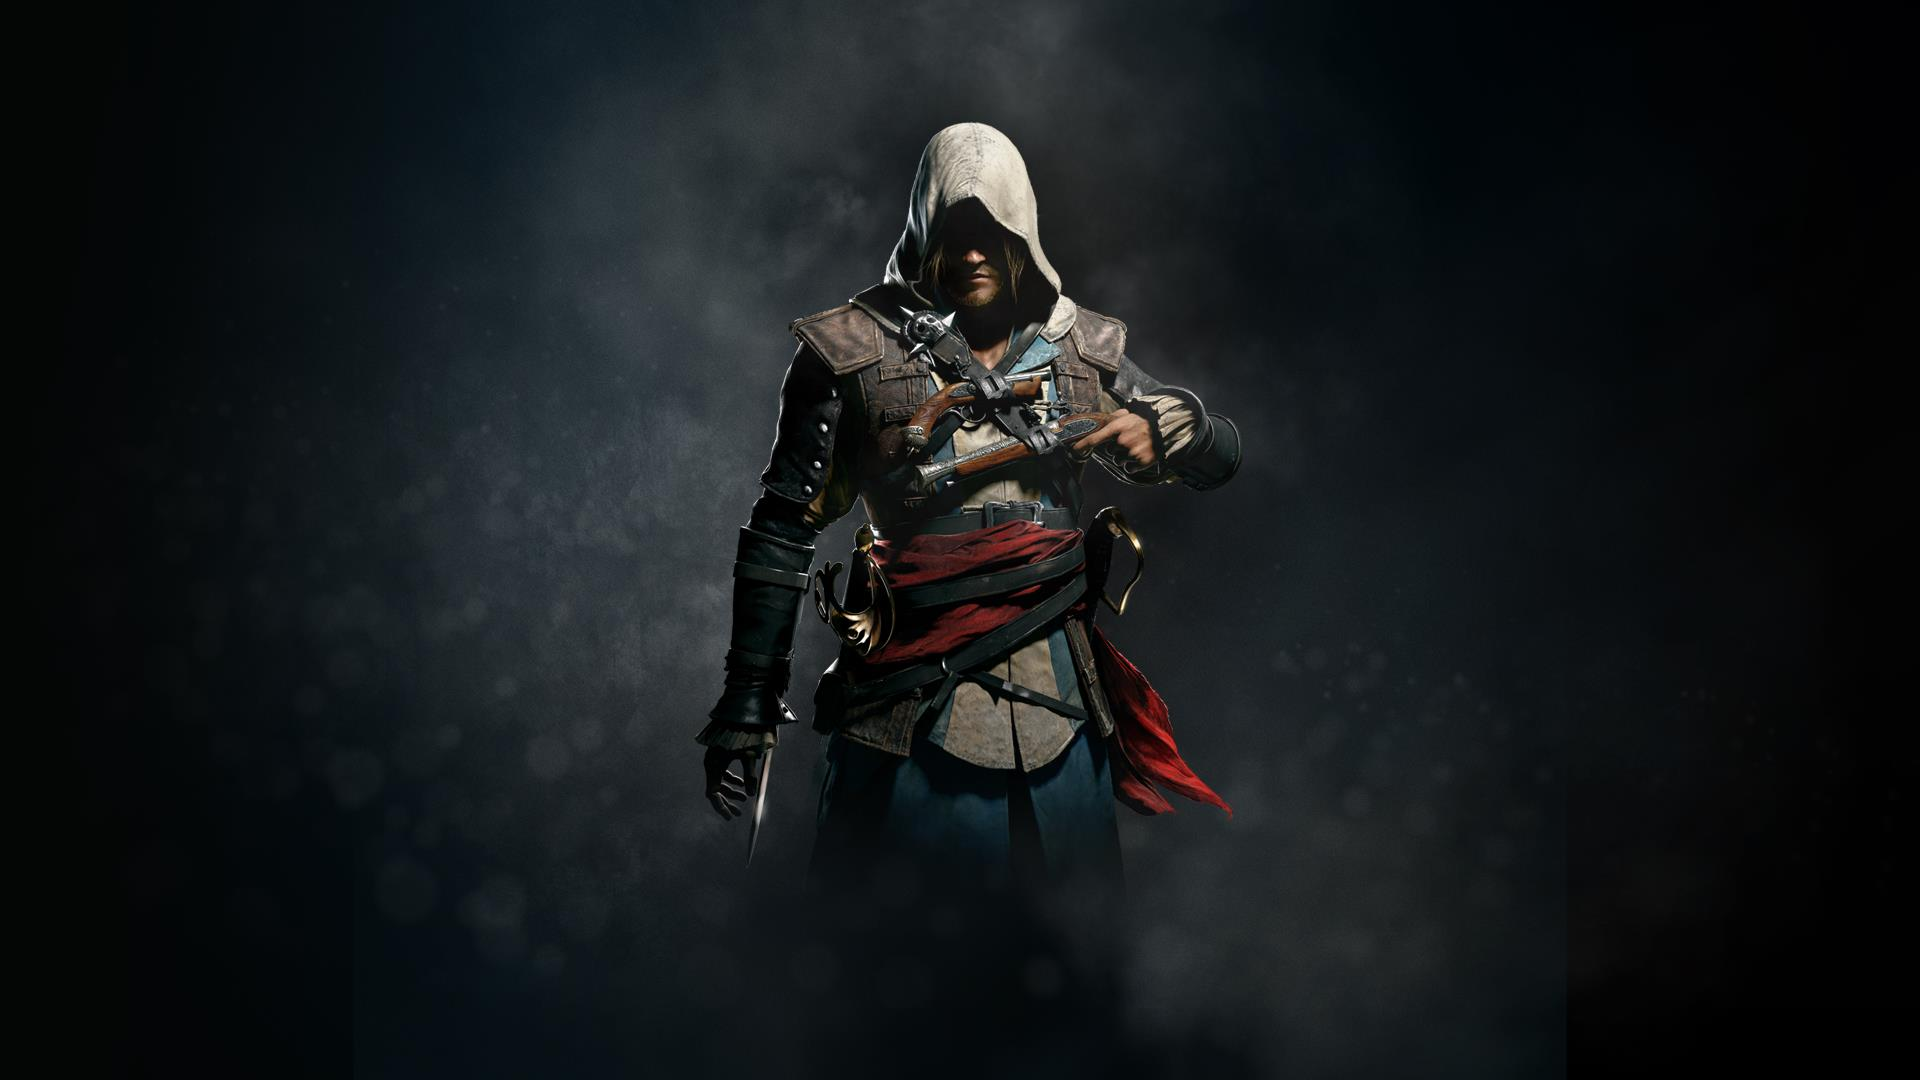 All Aboard! in Assassin's Creed IV: Black Flag